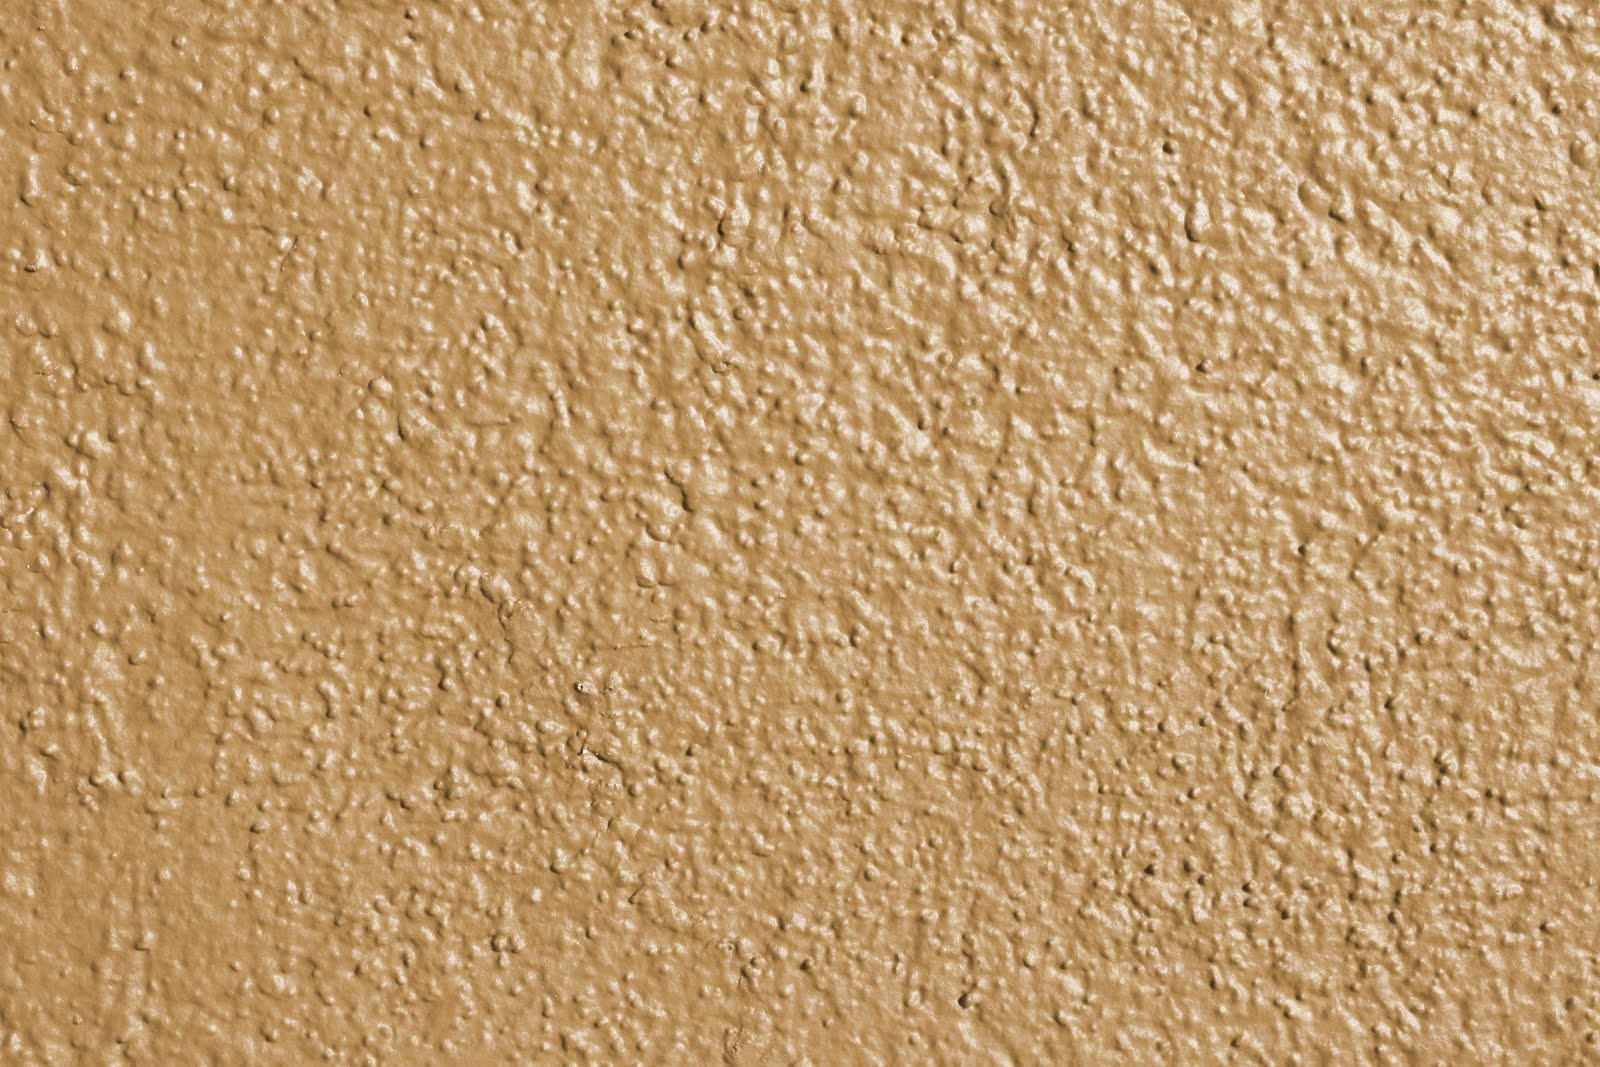 Textured Wallpaper To Paint - Textured Wallpaper